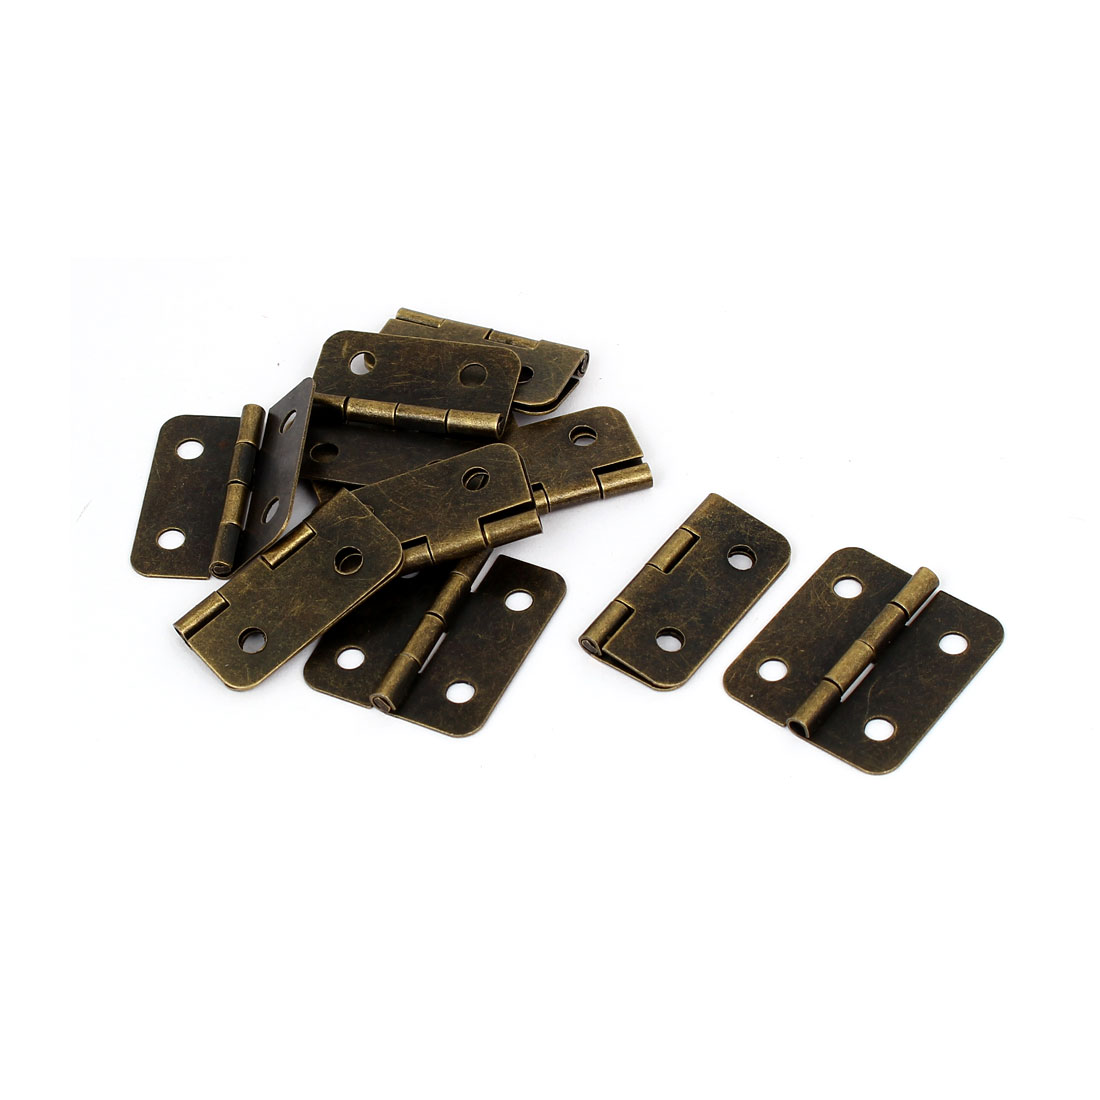 "Furniture Cupboard Door Metal Foldable Butt Hinges Bronze Tone 1.2"" Length 10PCS"